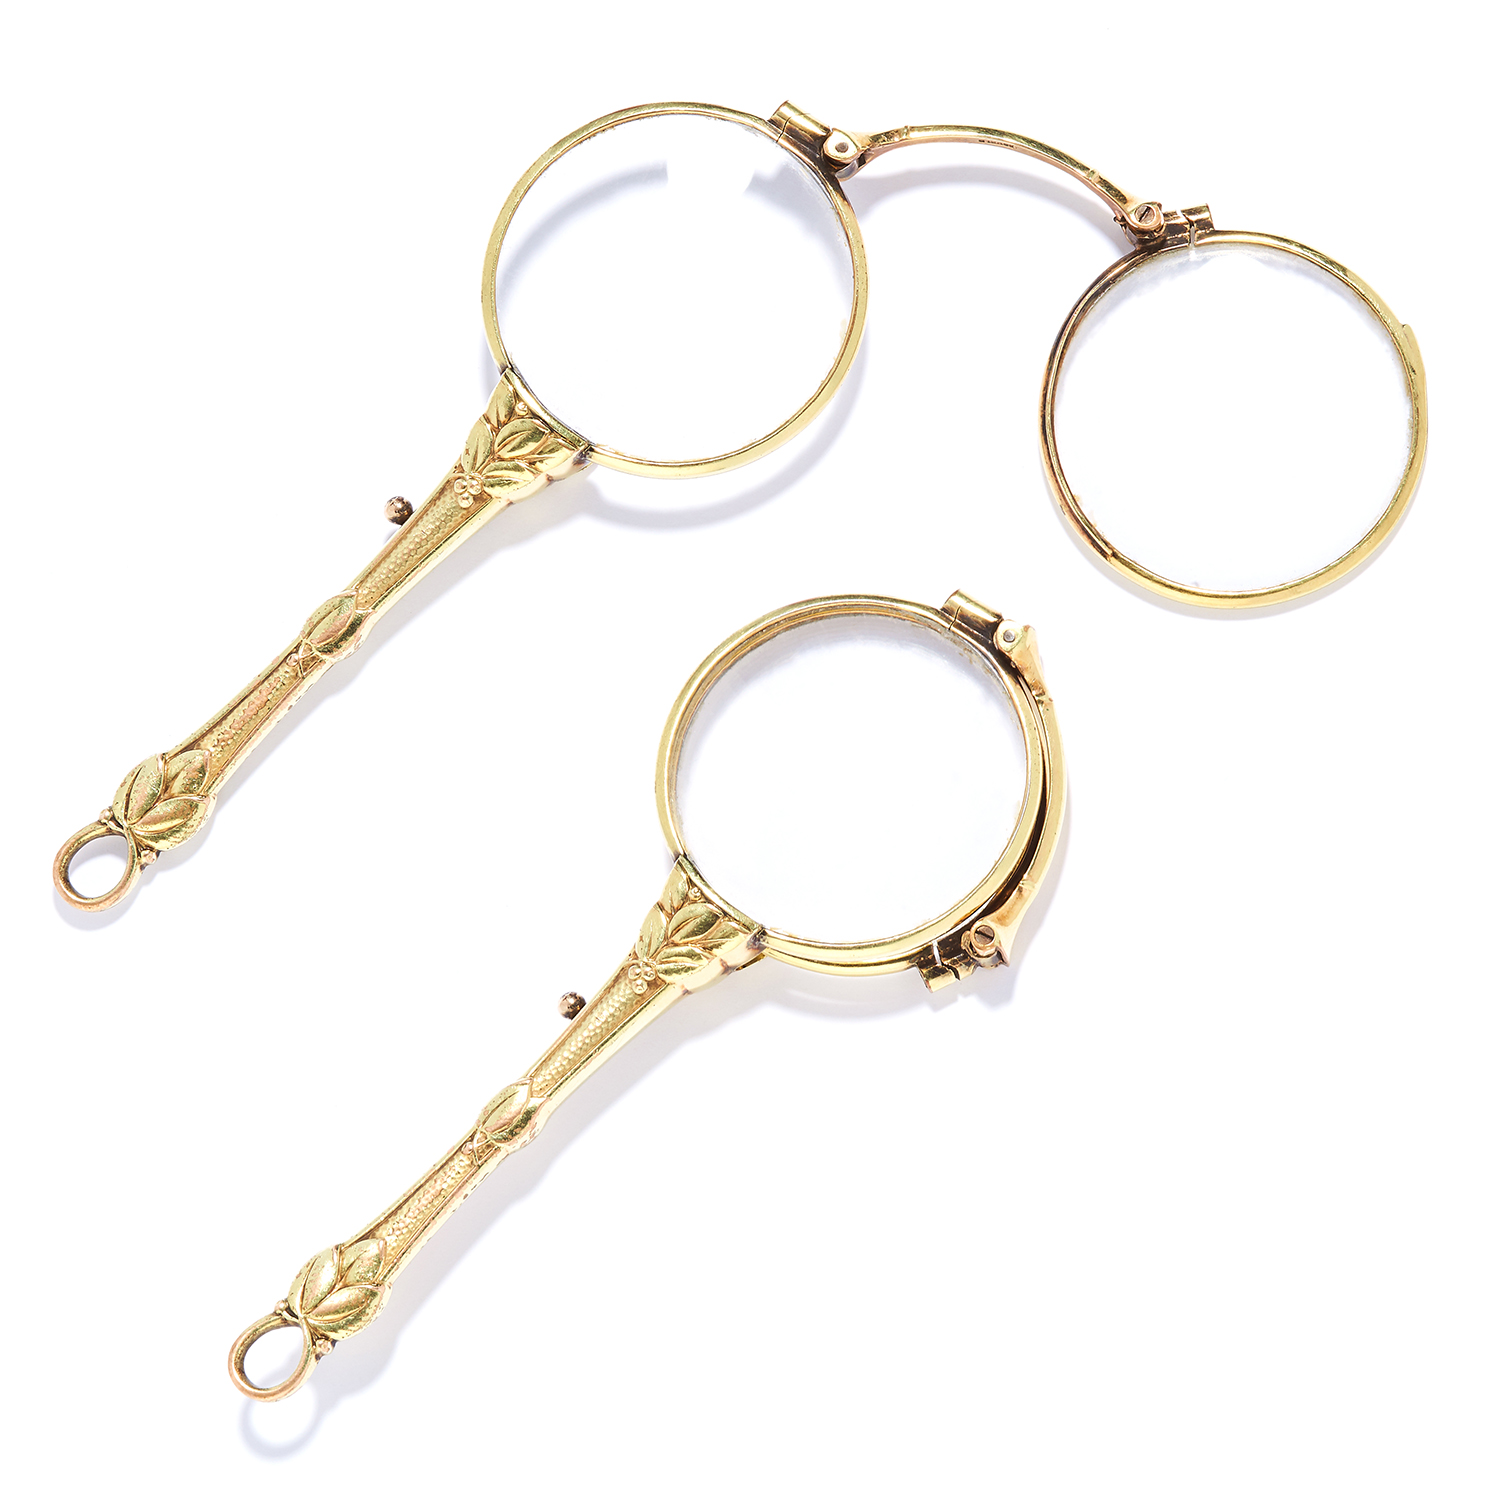 ART NOUVEAU LORGNETTE / FOLDING SPECTACLES, FRENCH with floral motifs, unmarked, 11cm, 23.9g.